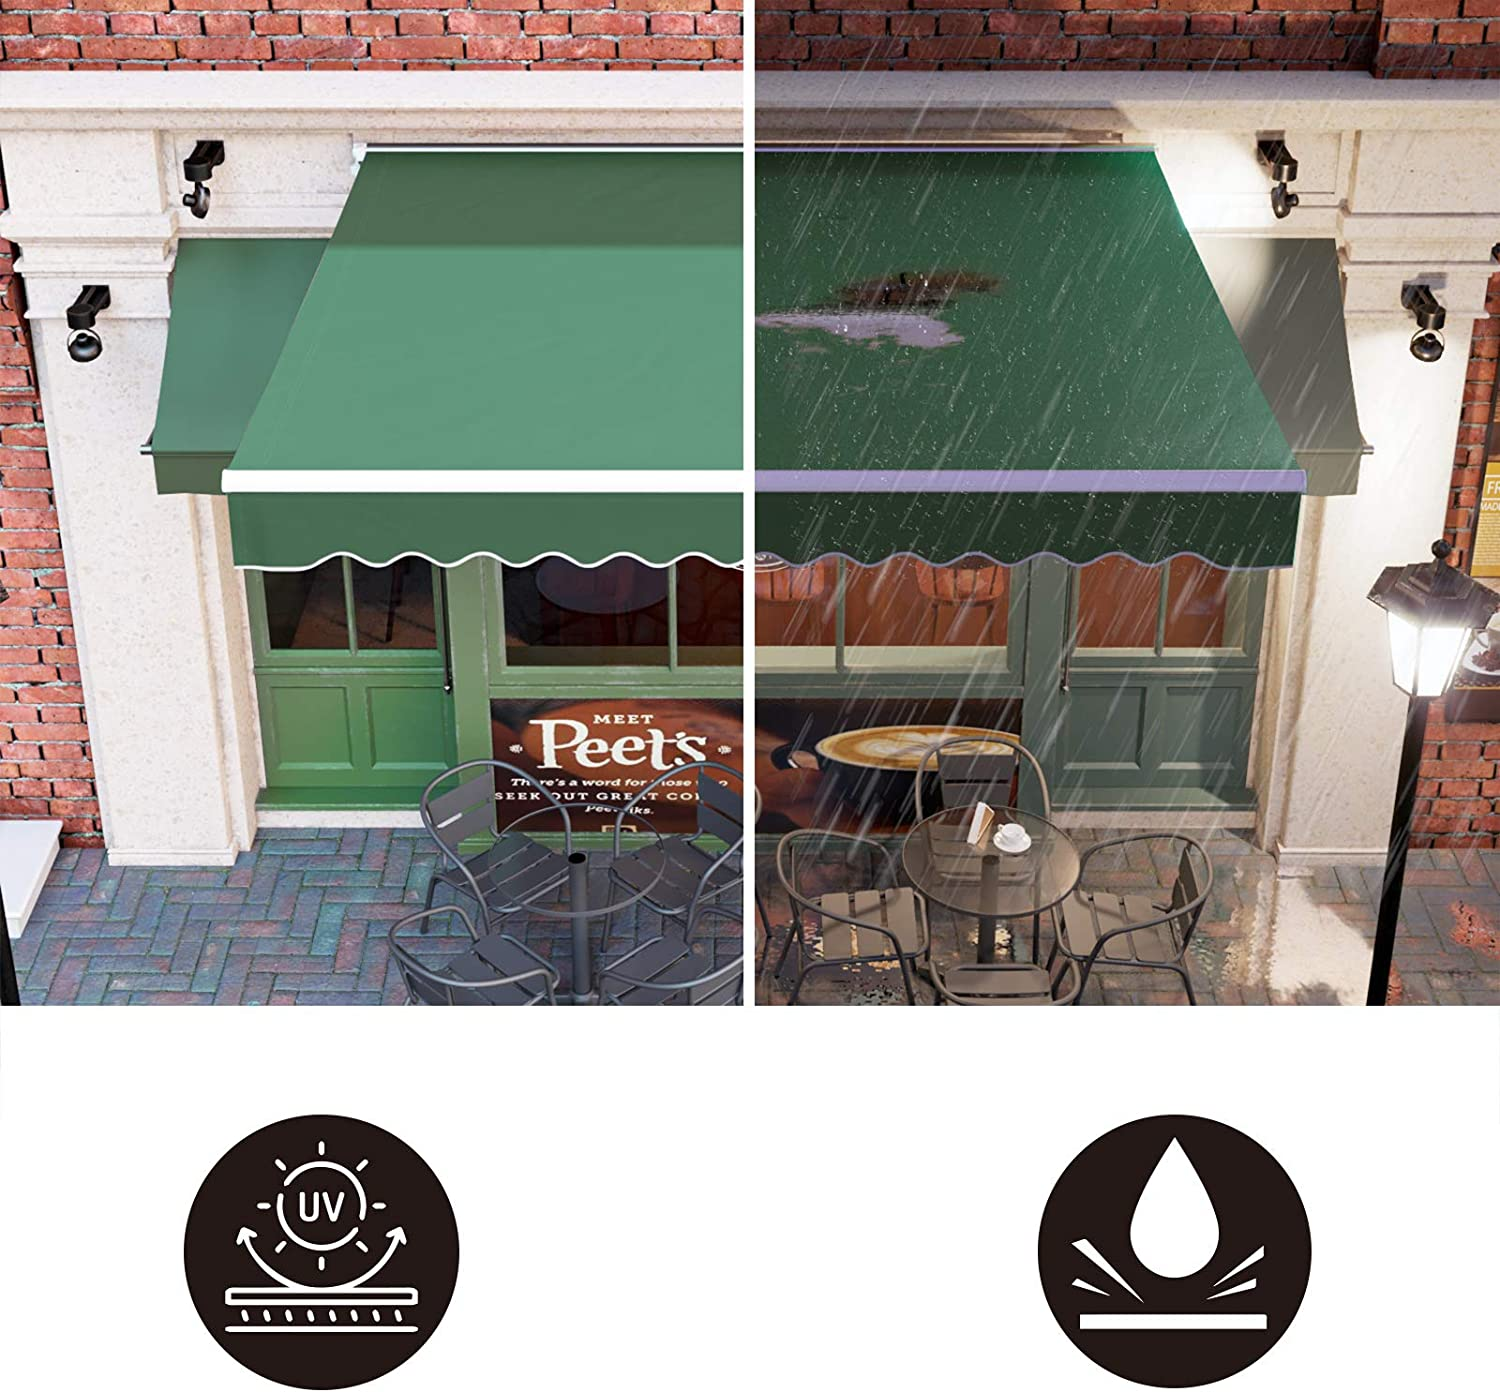 Balcony Water UV//Heat Resistant with Manual Crank Handle Cafe Outdoor Retractable Sunshade Window Door Shelter Pergola GARTIO 10 /× 8FT Patio Awning Canopy Restaurant Shop 10/×8FT for Courtyard